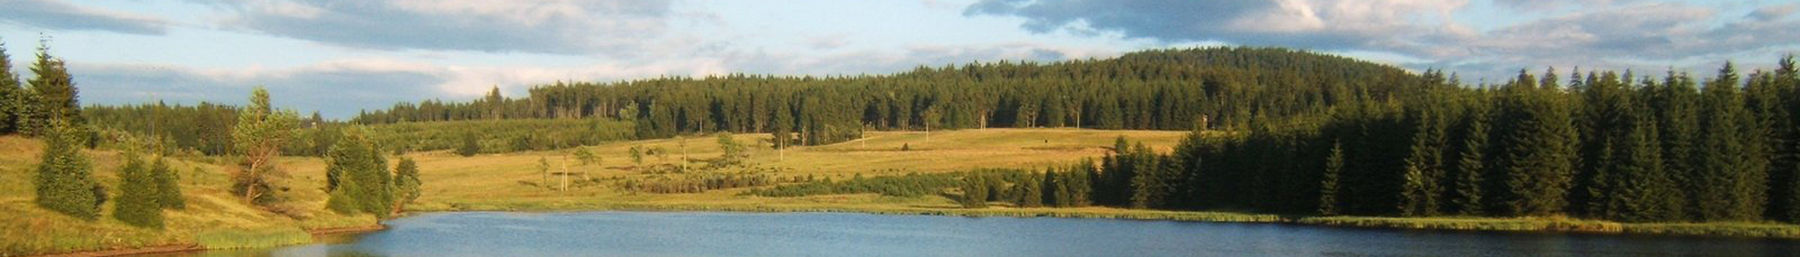 Water reservoir near Myslivny in the Ore Mountains